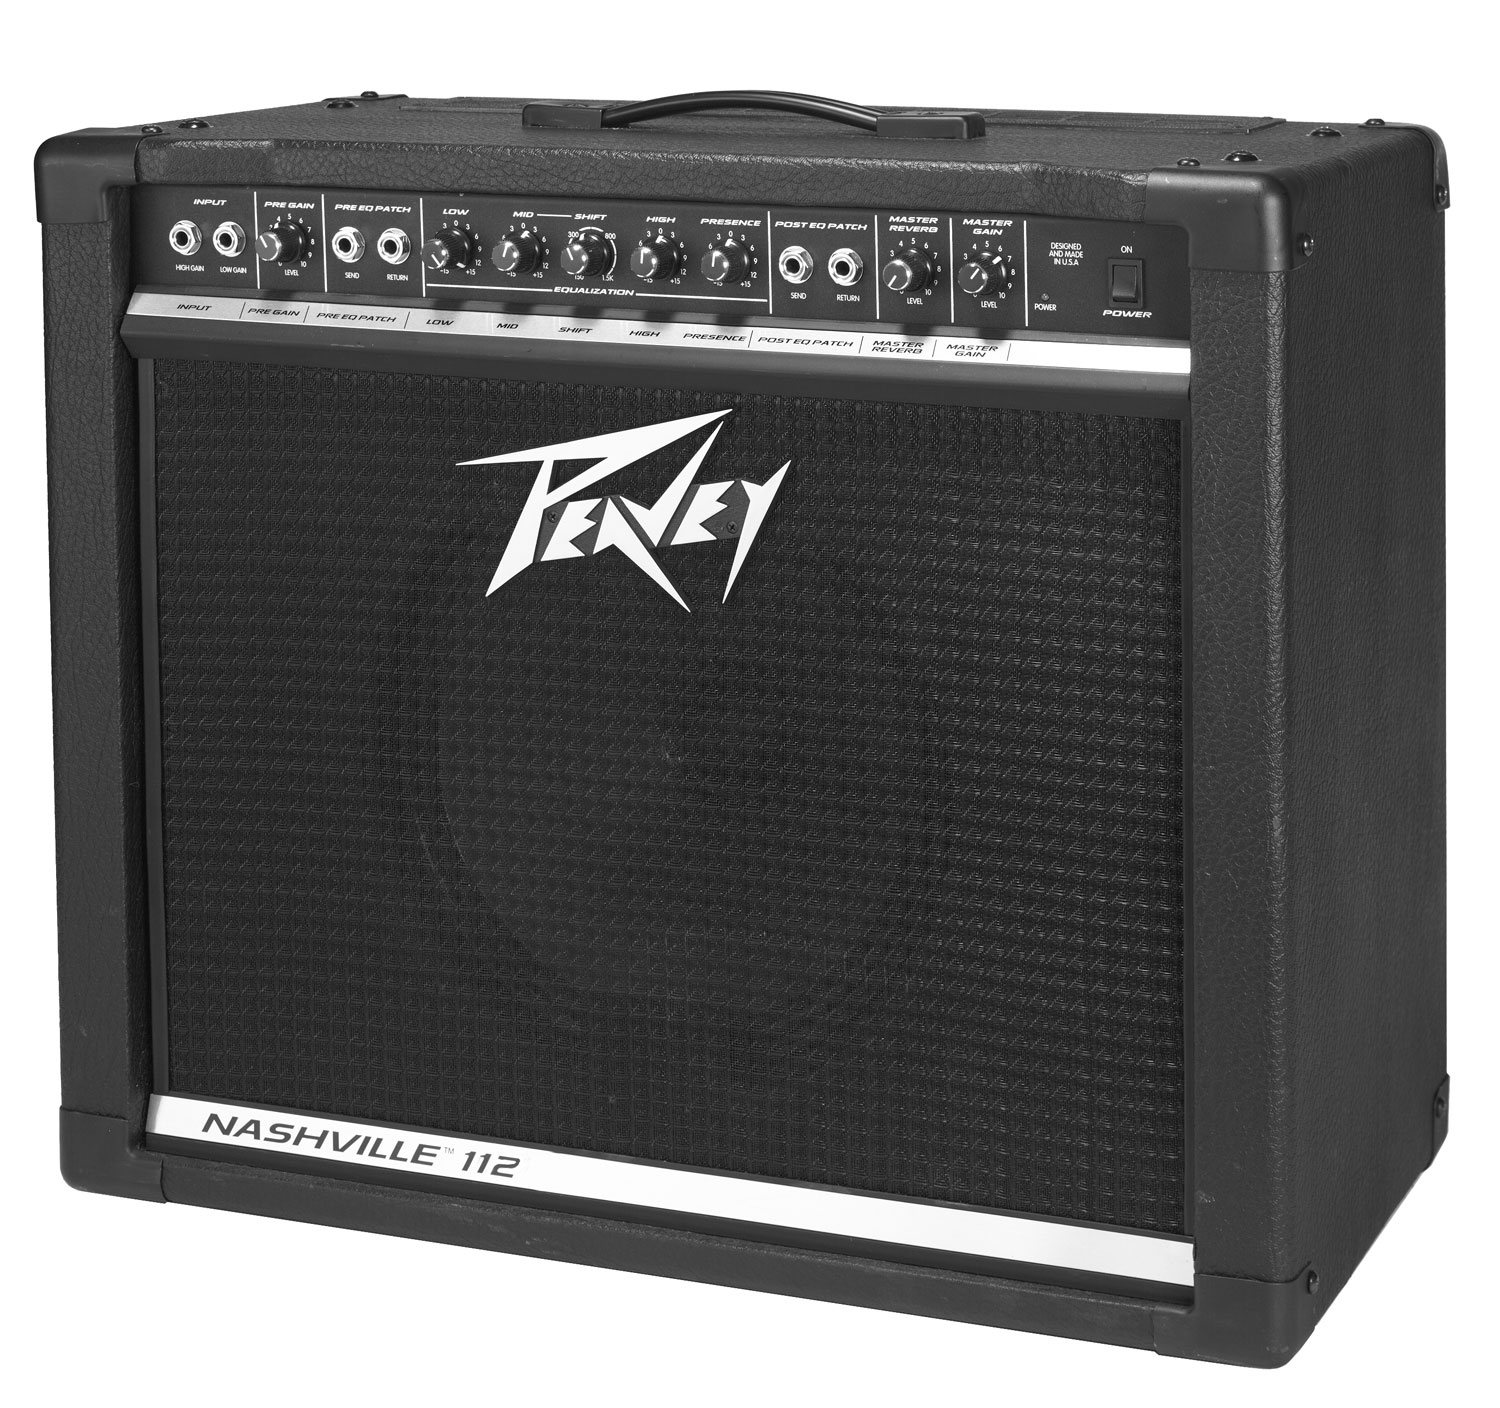 Peavey Nashville 112 Pedal Steel Guitar Amplifier